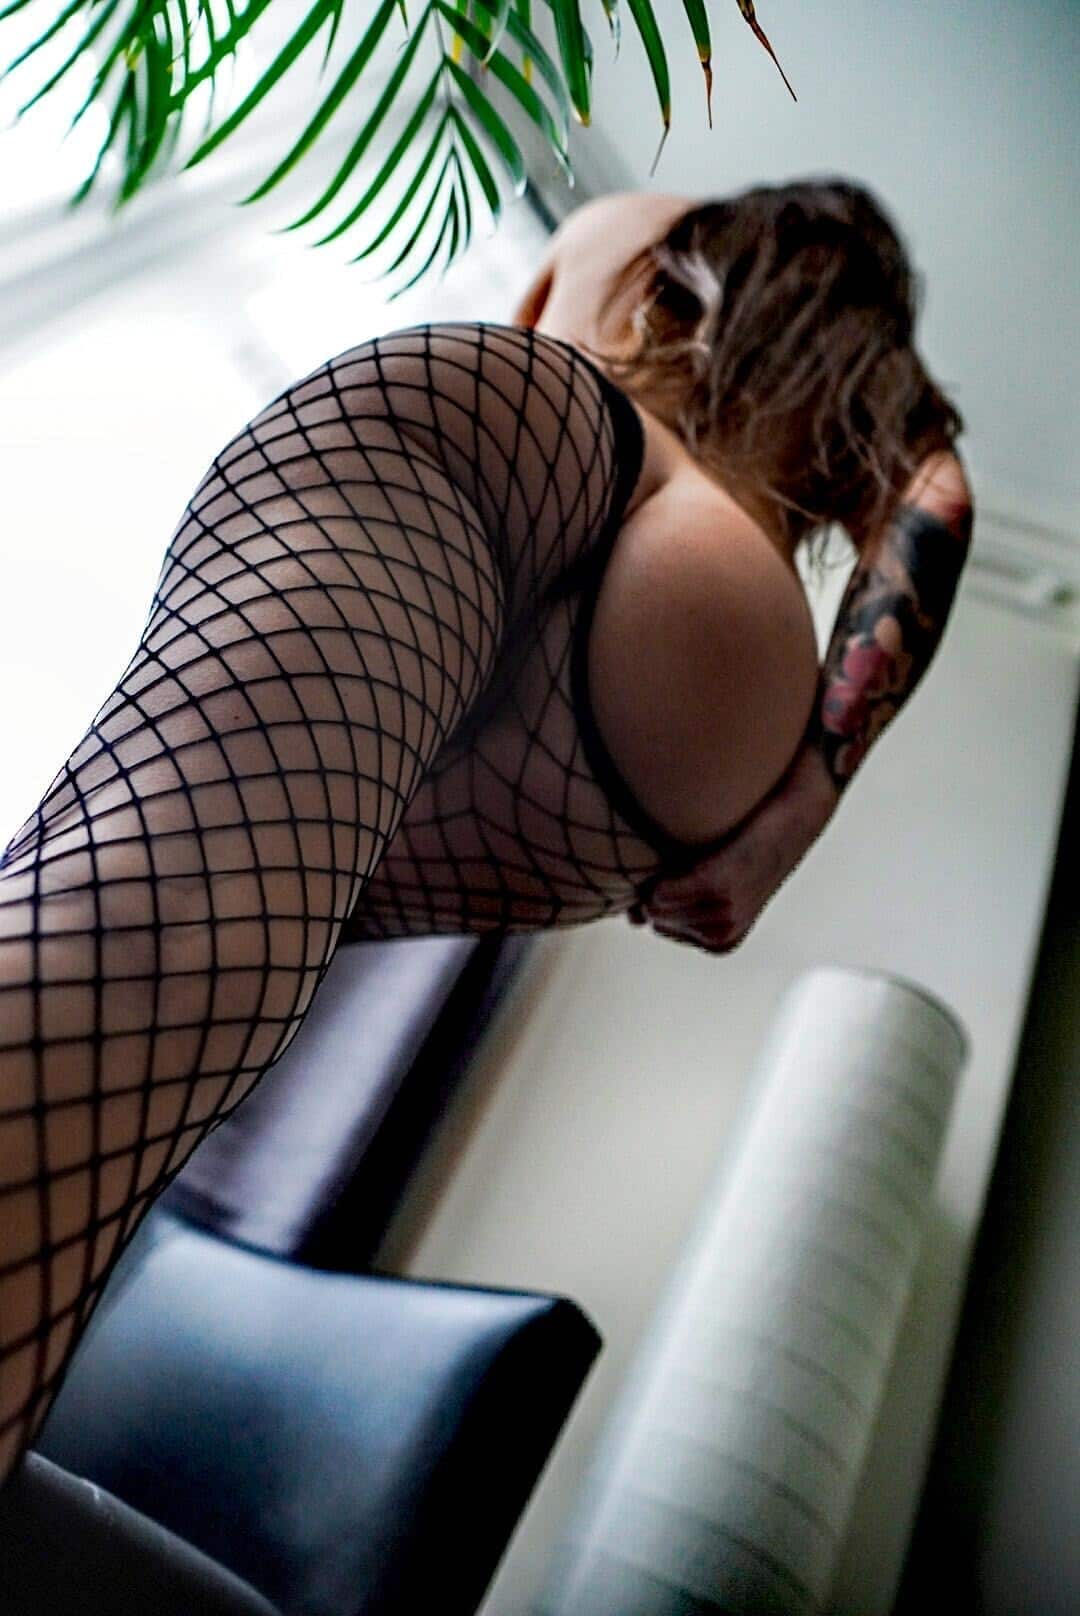 Beautiful tattooed model Anka Dawid @freakin.juicy wearing black fishnets pantyhose showing some hot booty